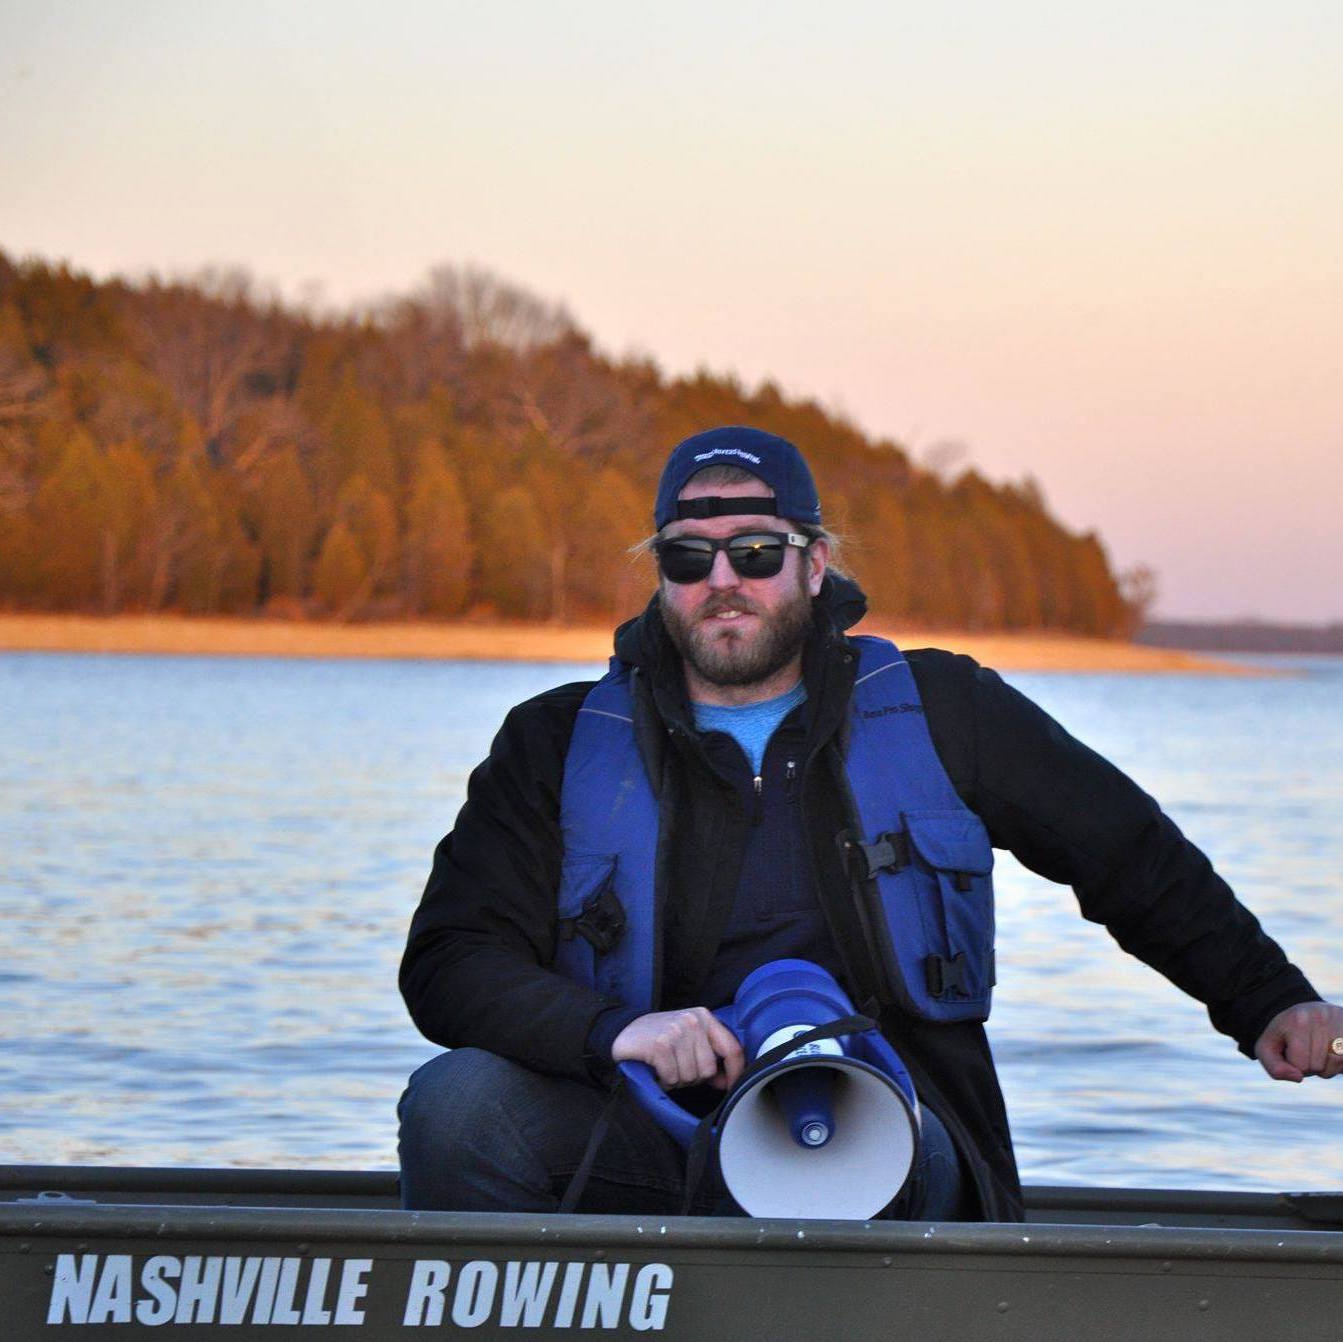 Cory's EMAIL:  cory.Sanderson@nashvillerowing.org